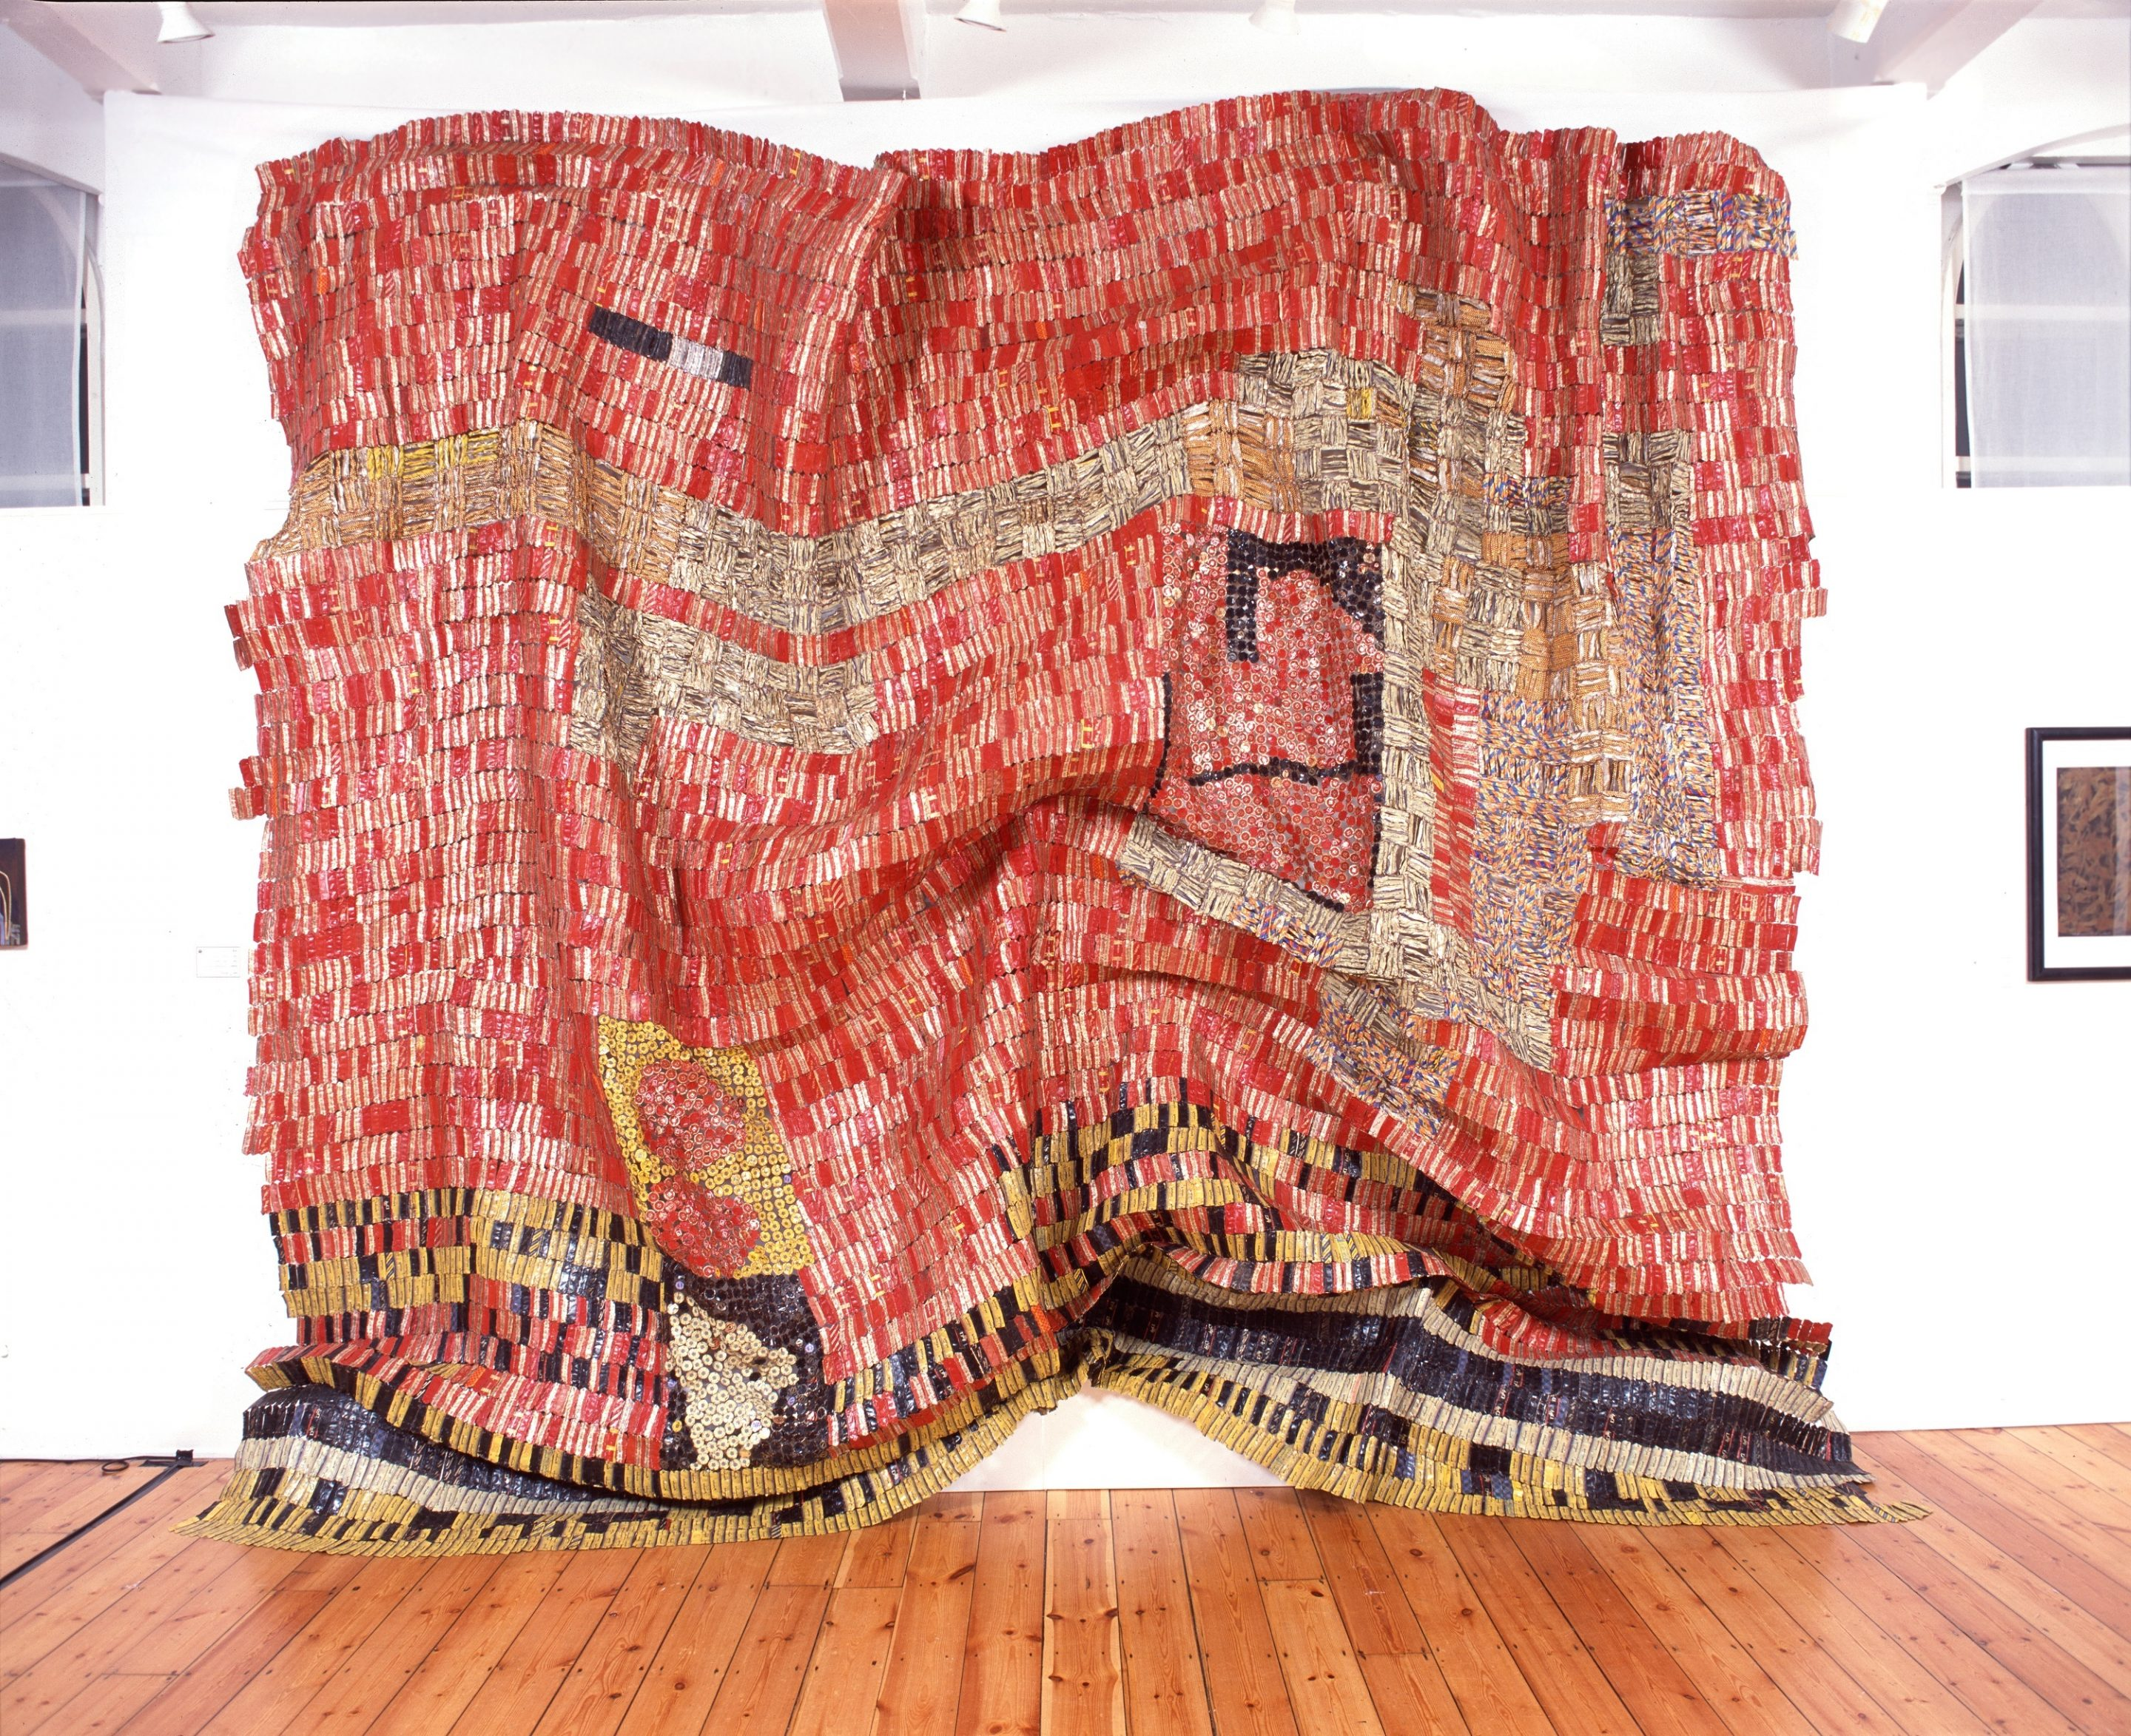 El Anatsui. Flag For A New World Power, 2004, Tapas de aluminio y alambre de cobre. Foto cortesía: October Gallery, Londres